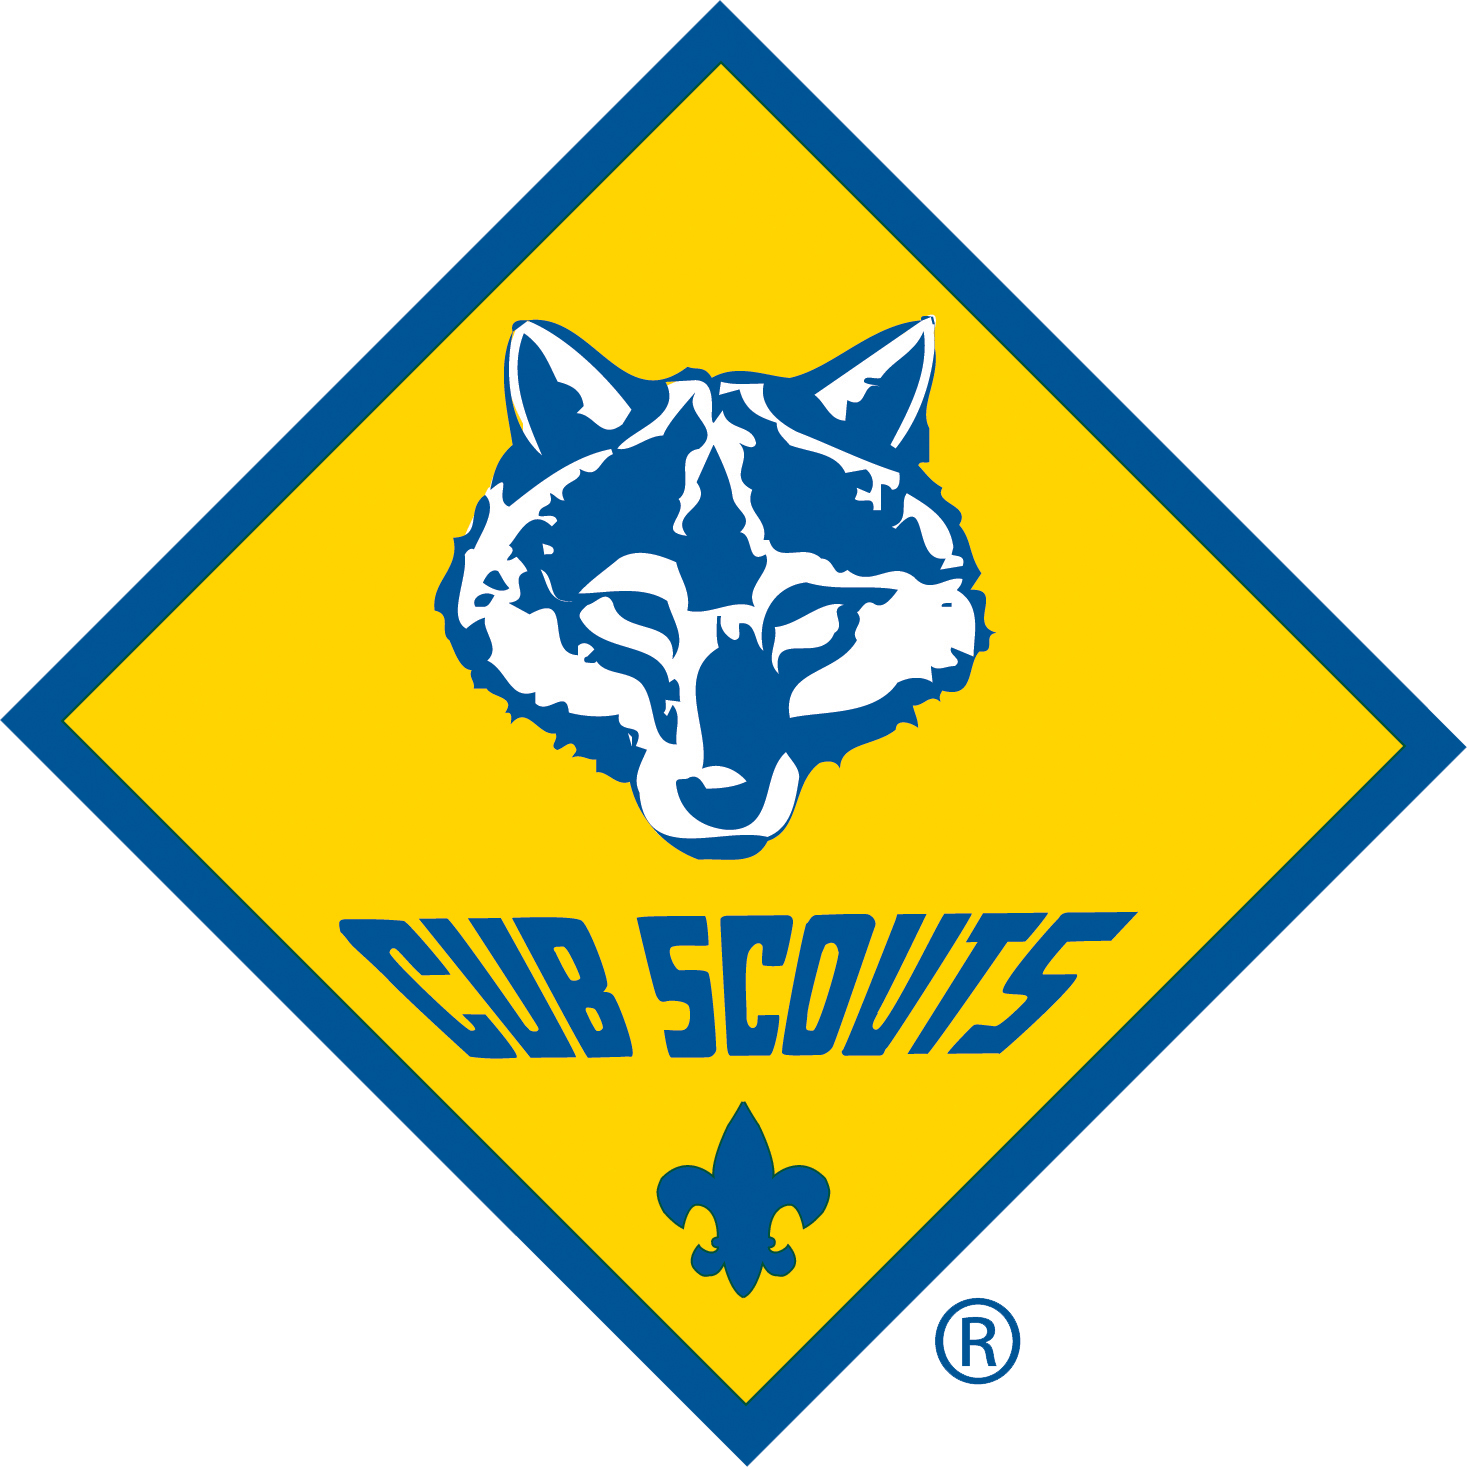 CubScout_4K.png